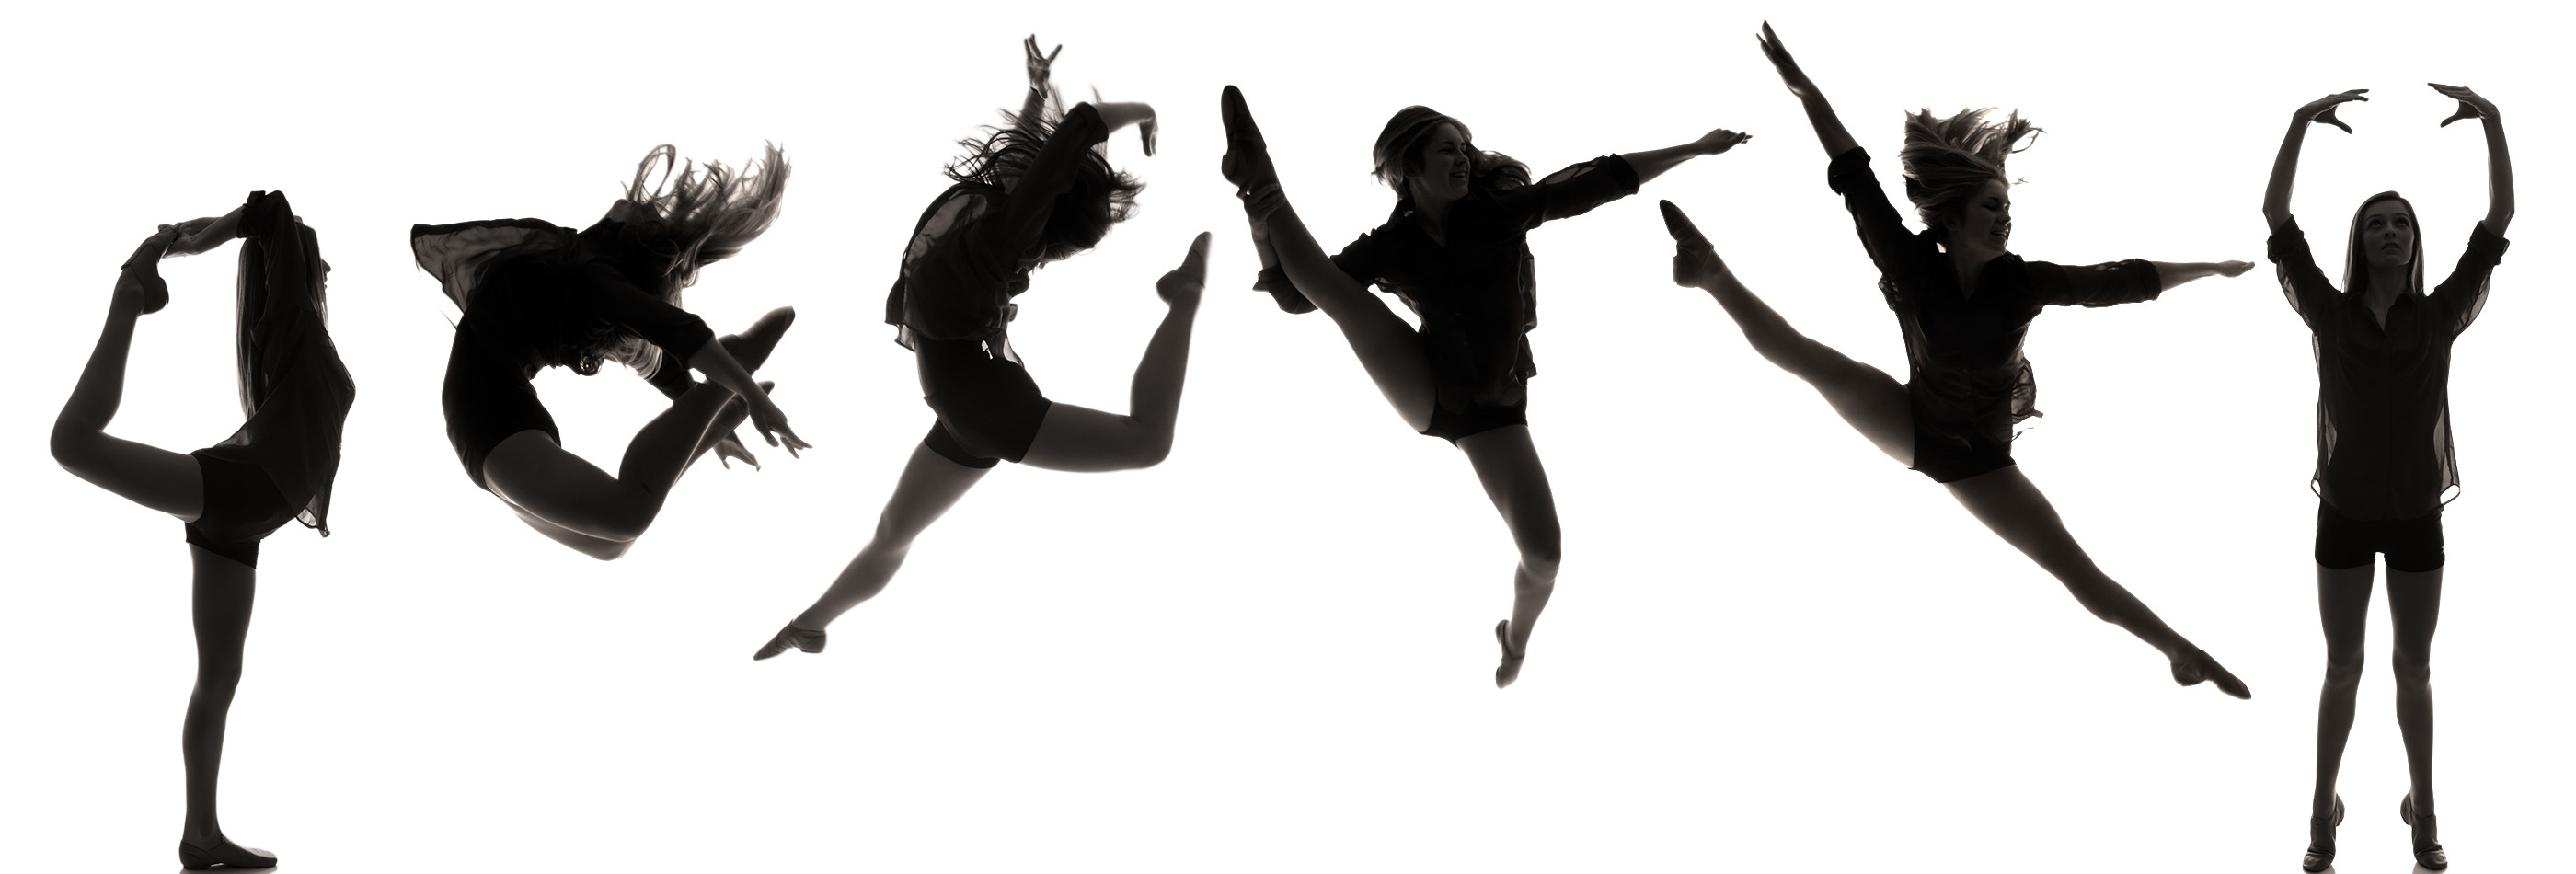 Dance clipart dance team. Silhouette at getdrawings com